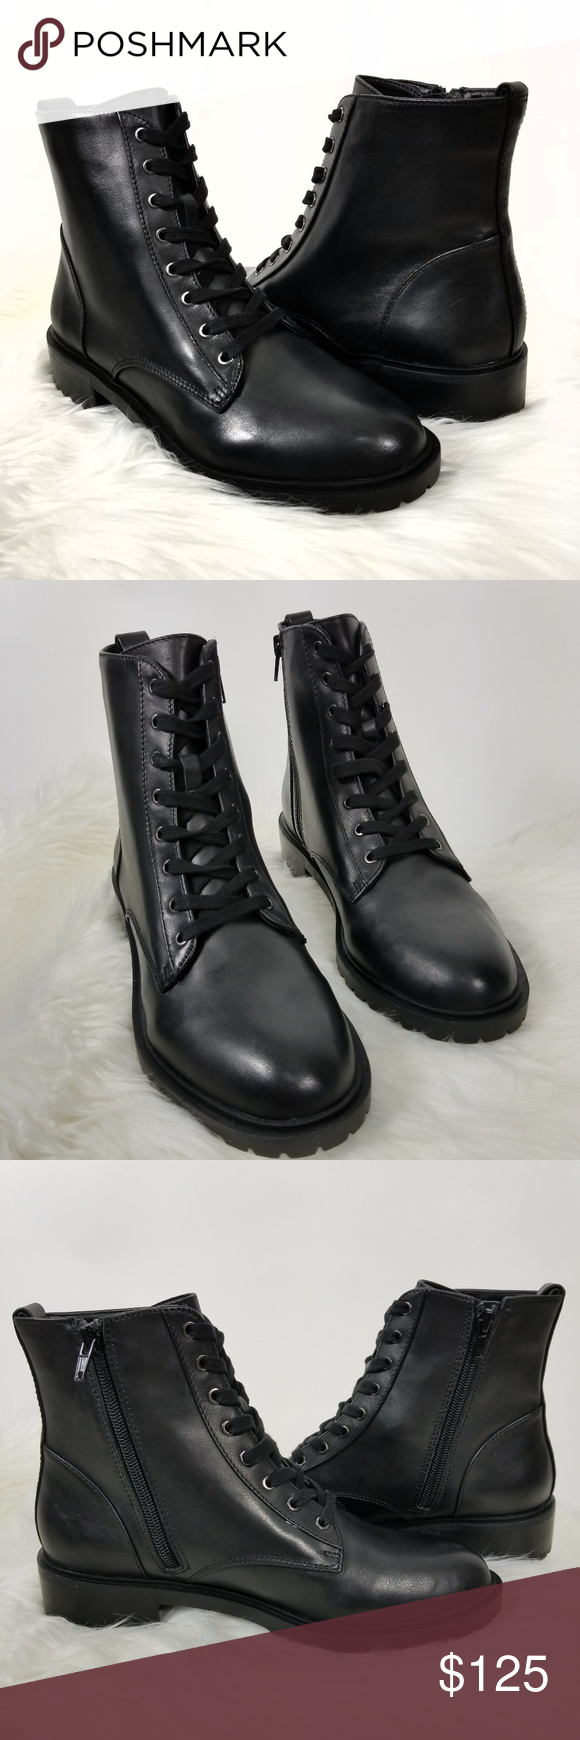 1dae4c8f658 🌹Steve Madden Black Officer Combat Boot🌹 Steve Madden officer combat boot.  Leather upper